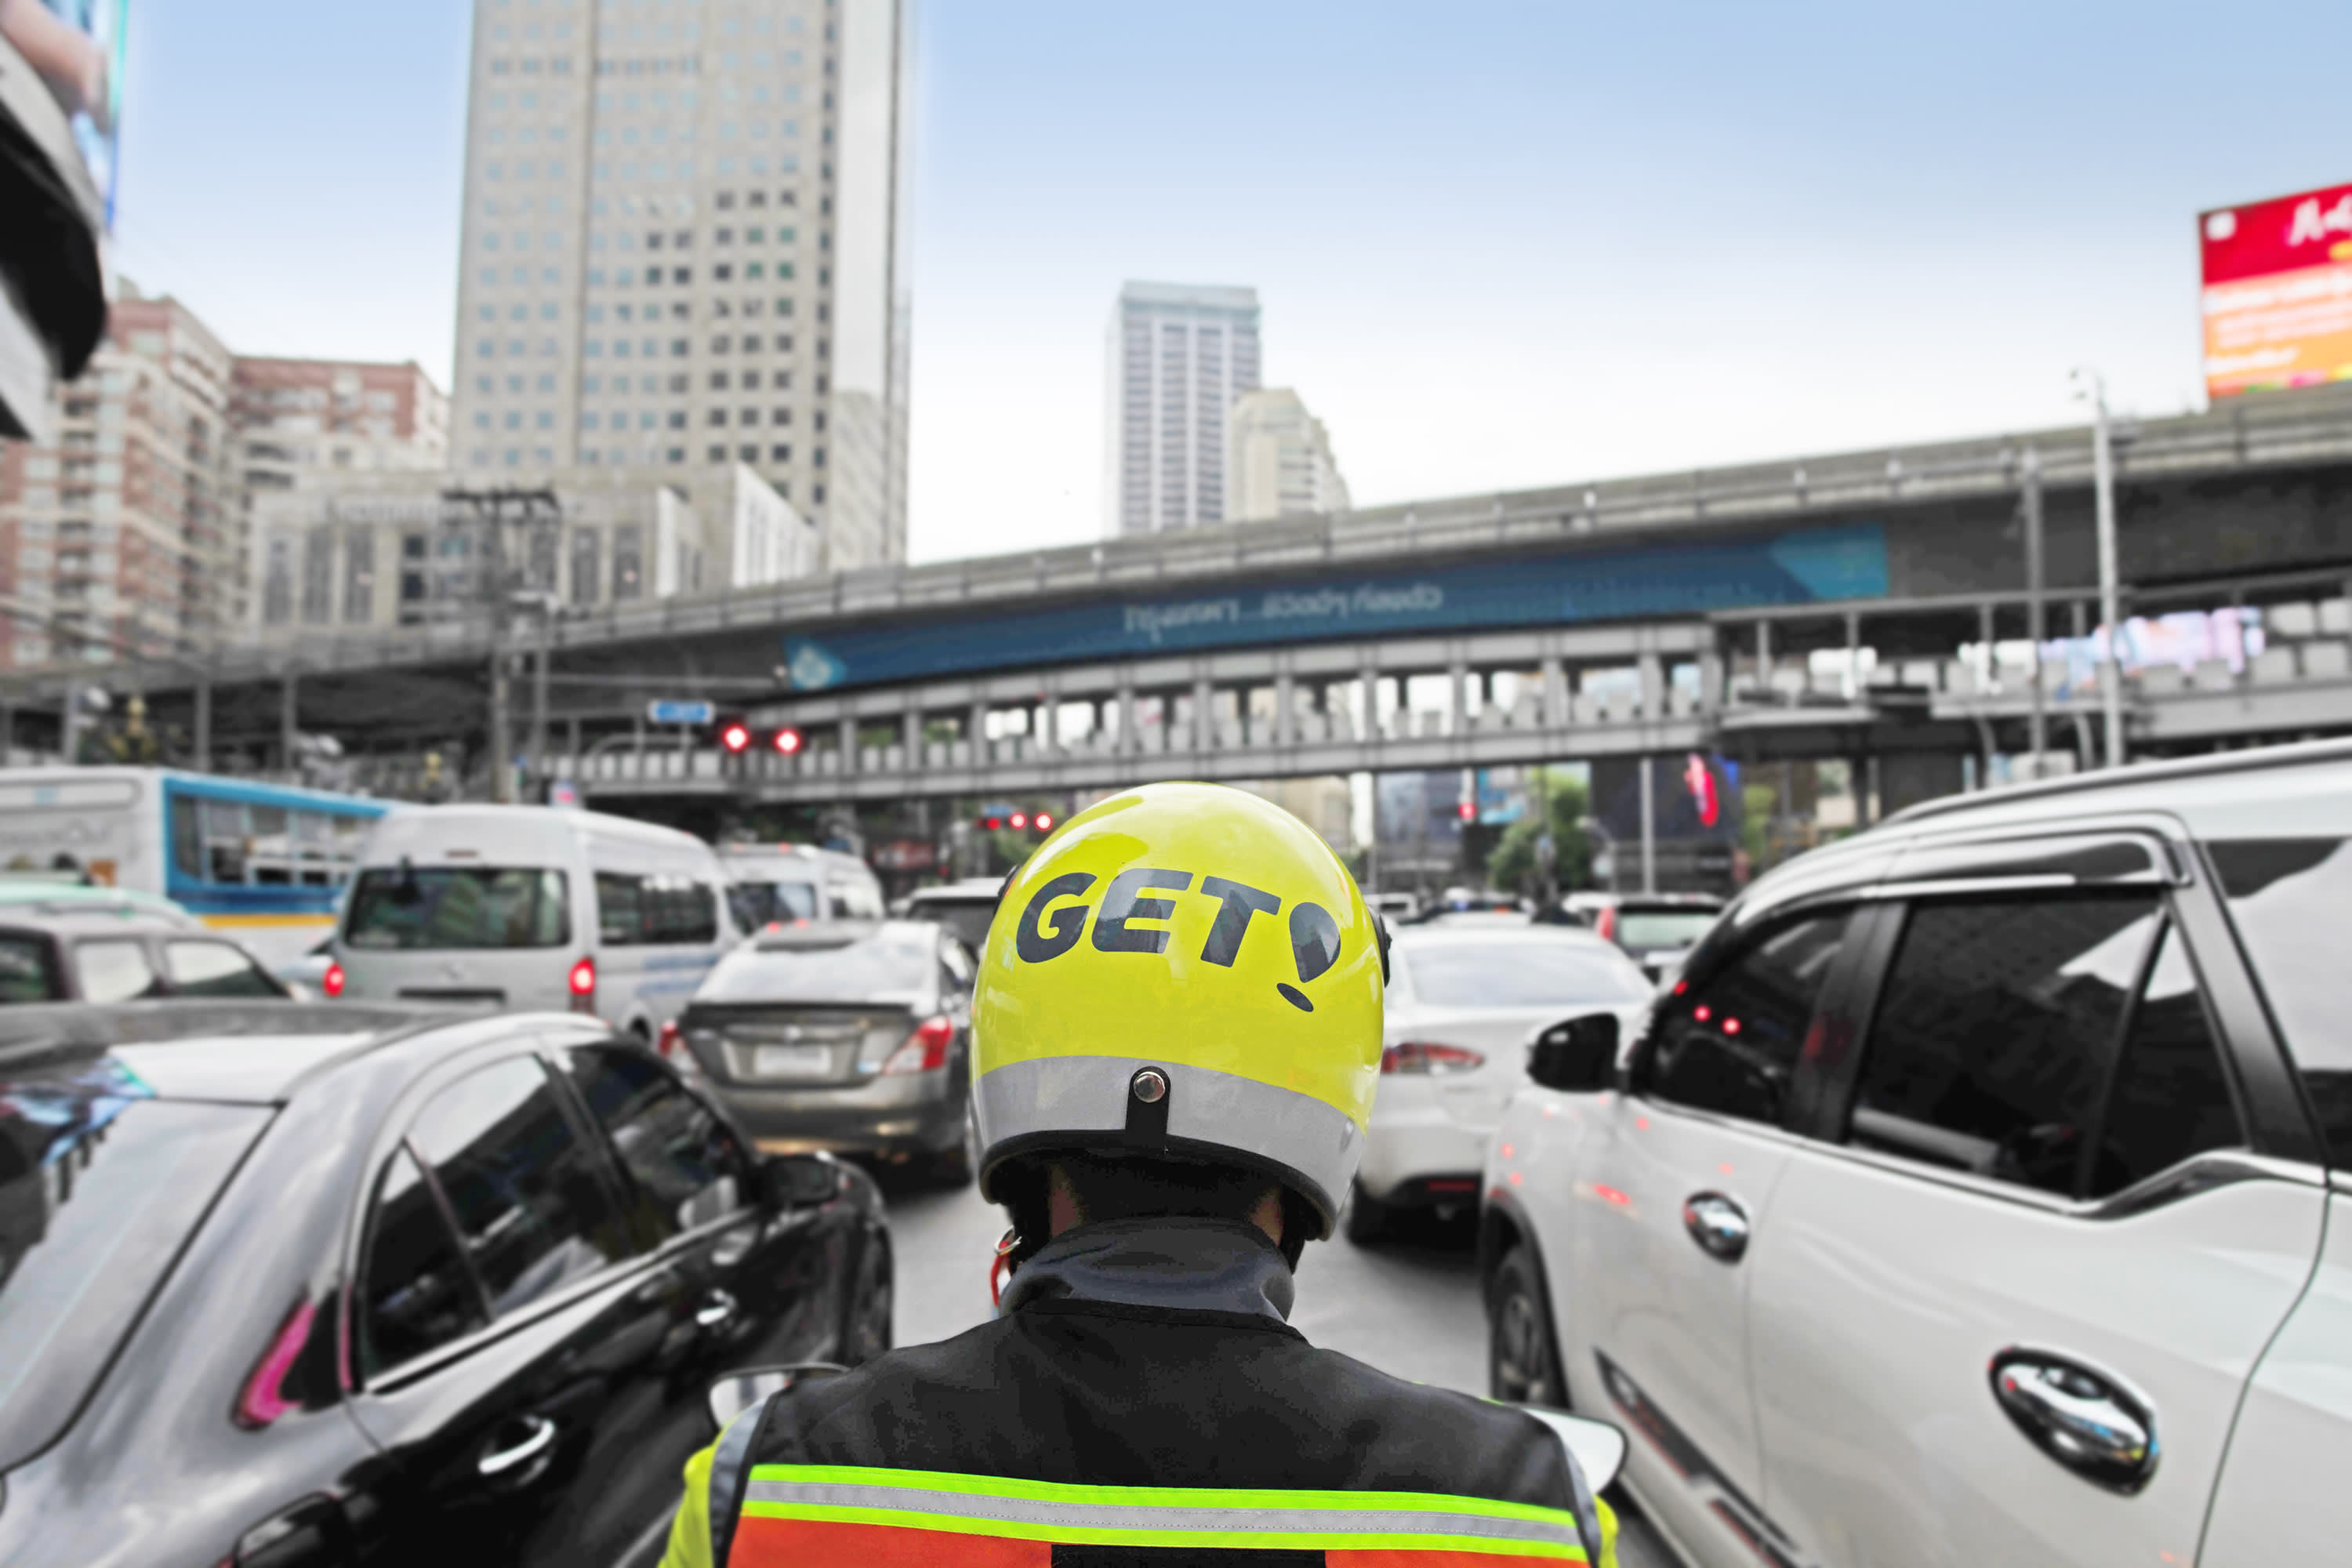 A Get driver delivers food in Bangkok. The Thai food delivery market looks to grow at least 11% annually, given heavy traffic congestion.  Image: Get Thailand